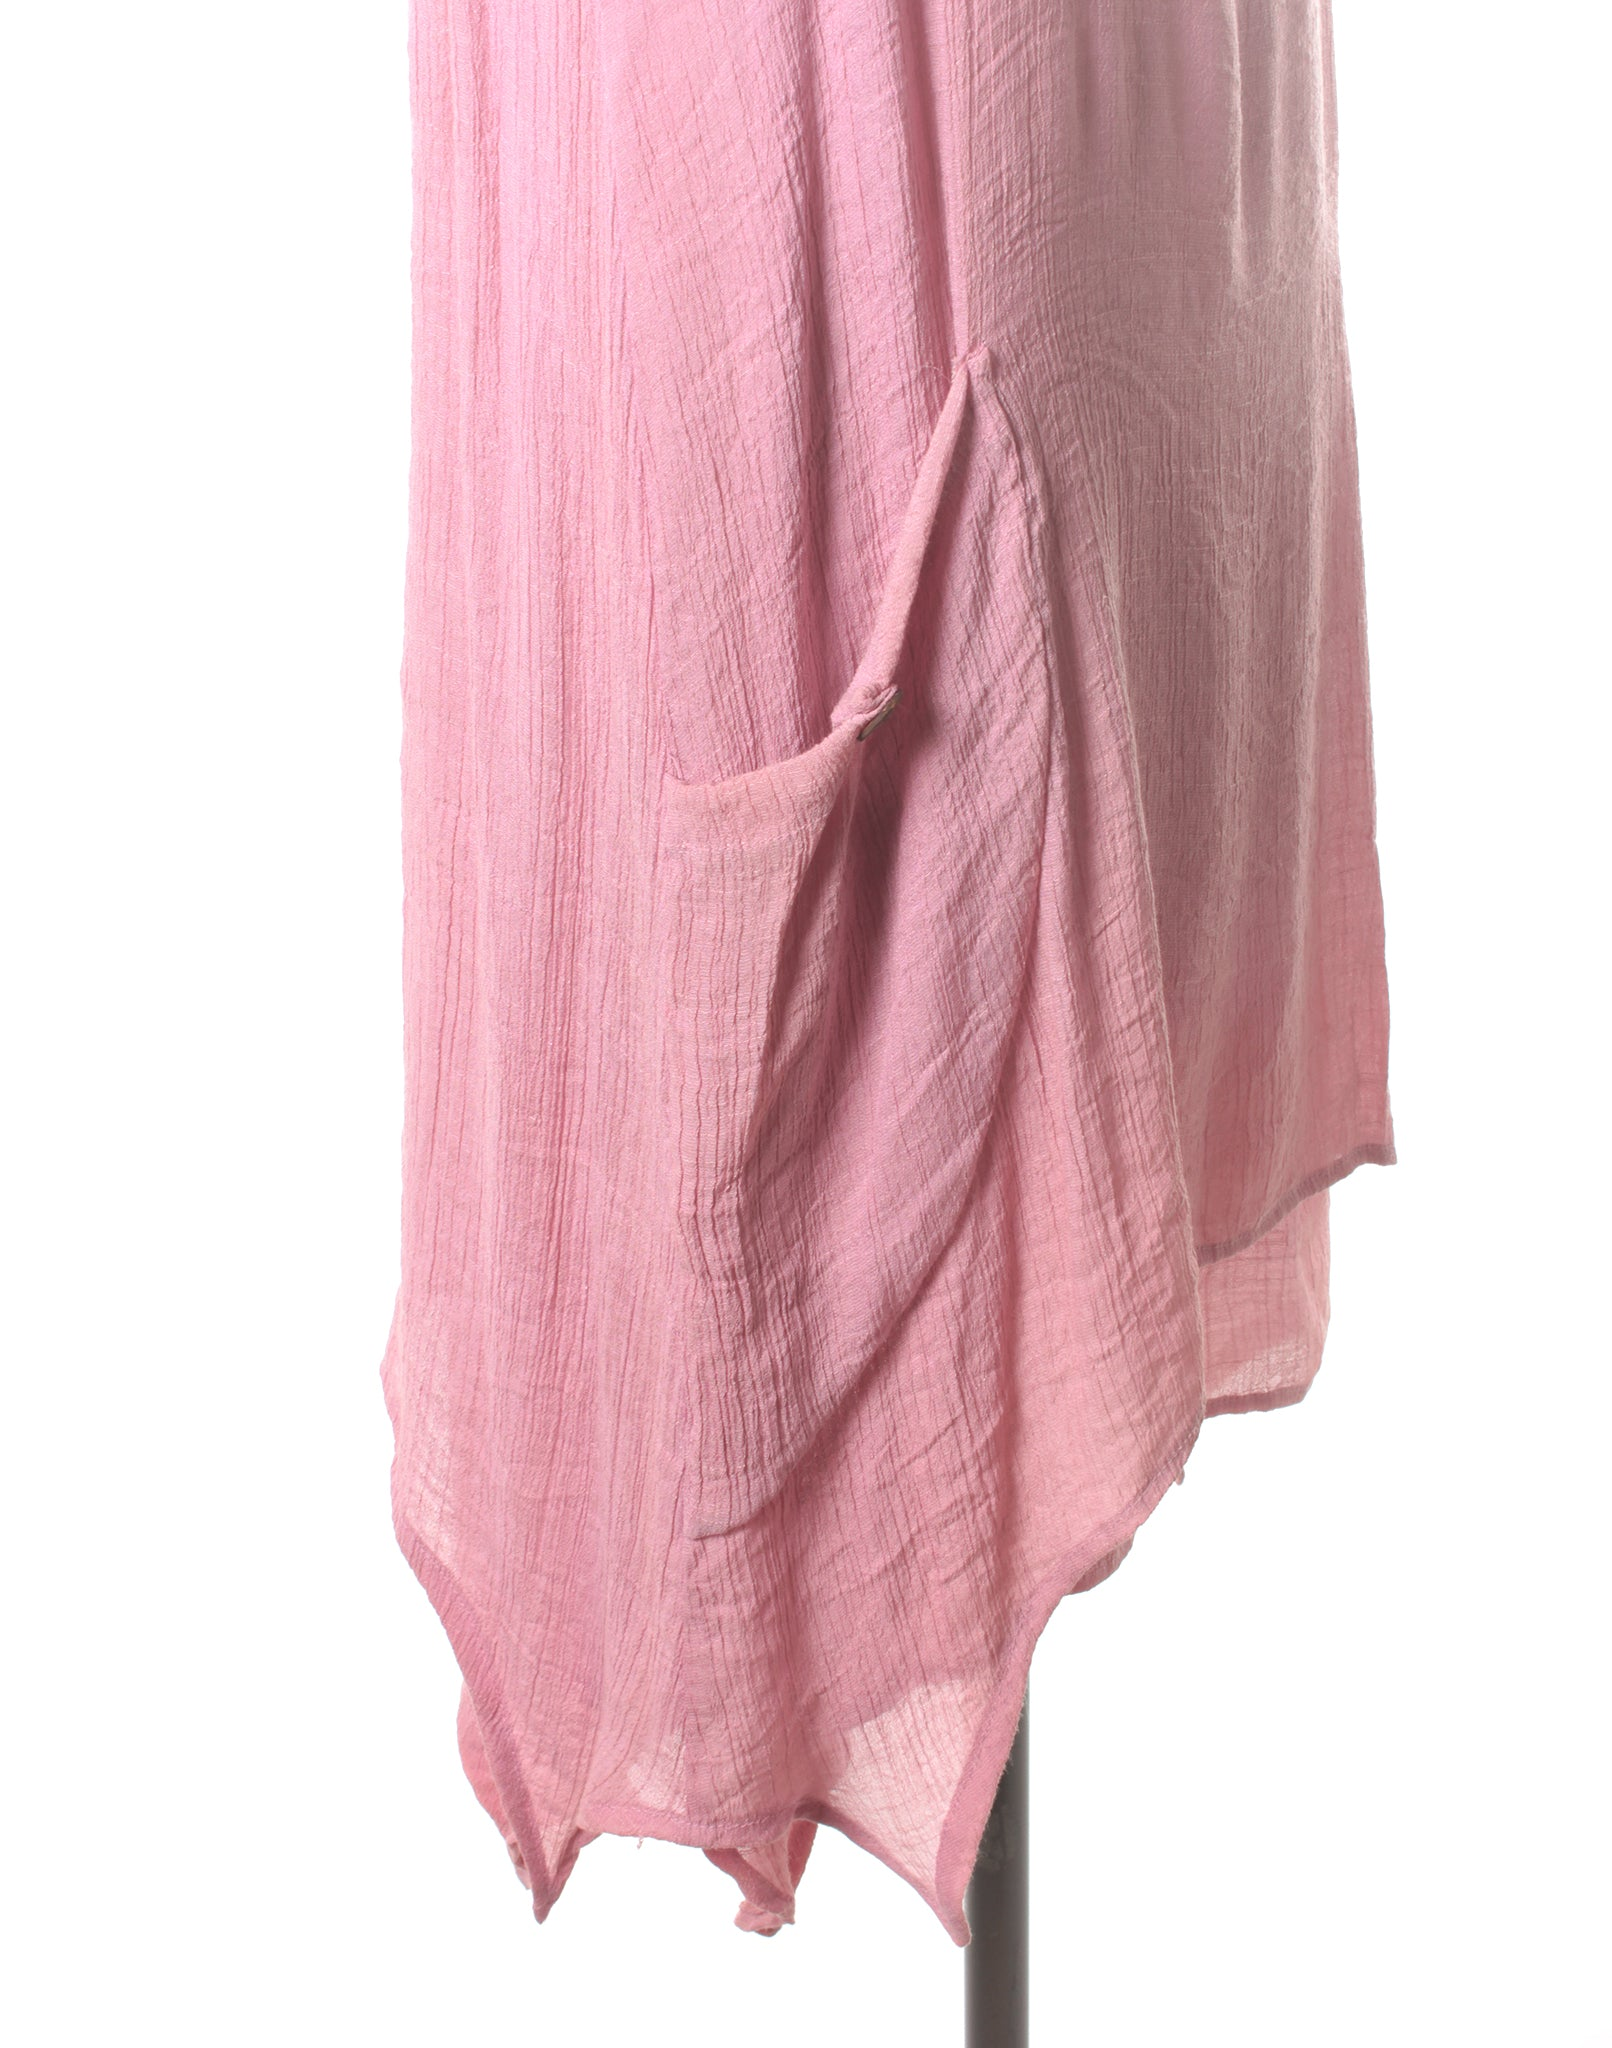 Vintage 90's Pink Silk Slip Dress with Pockets